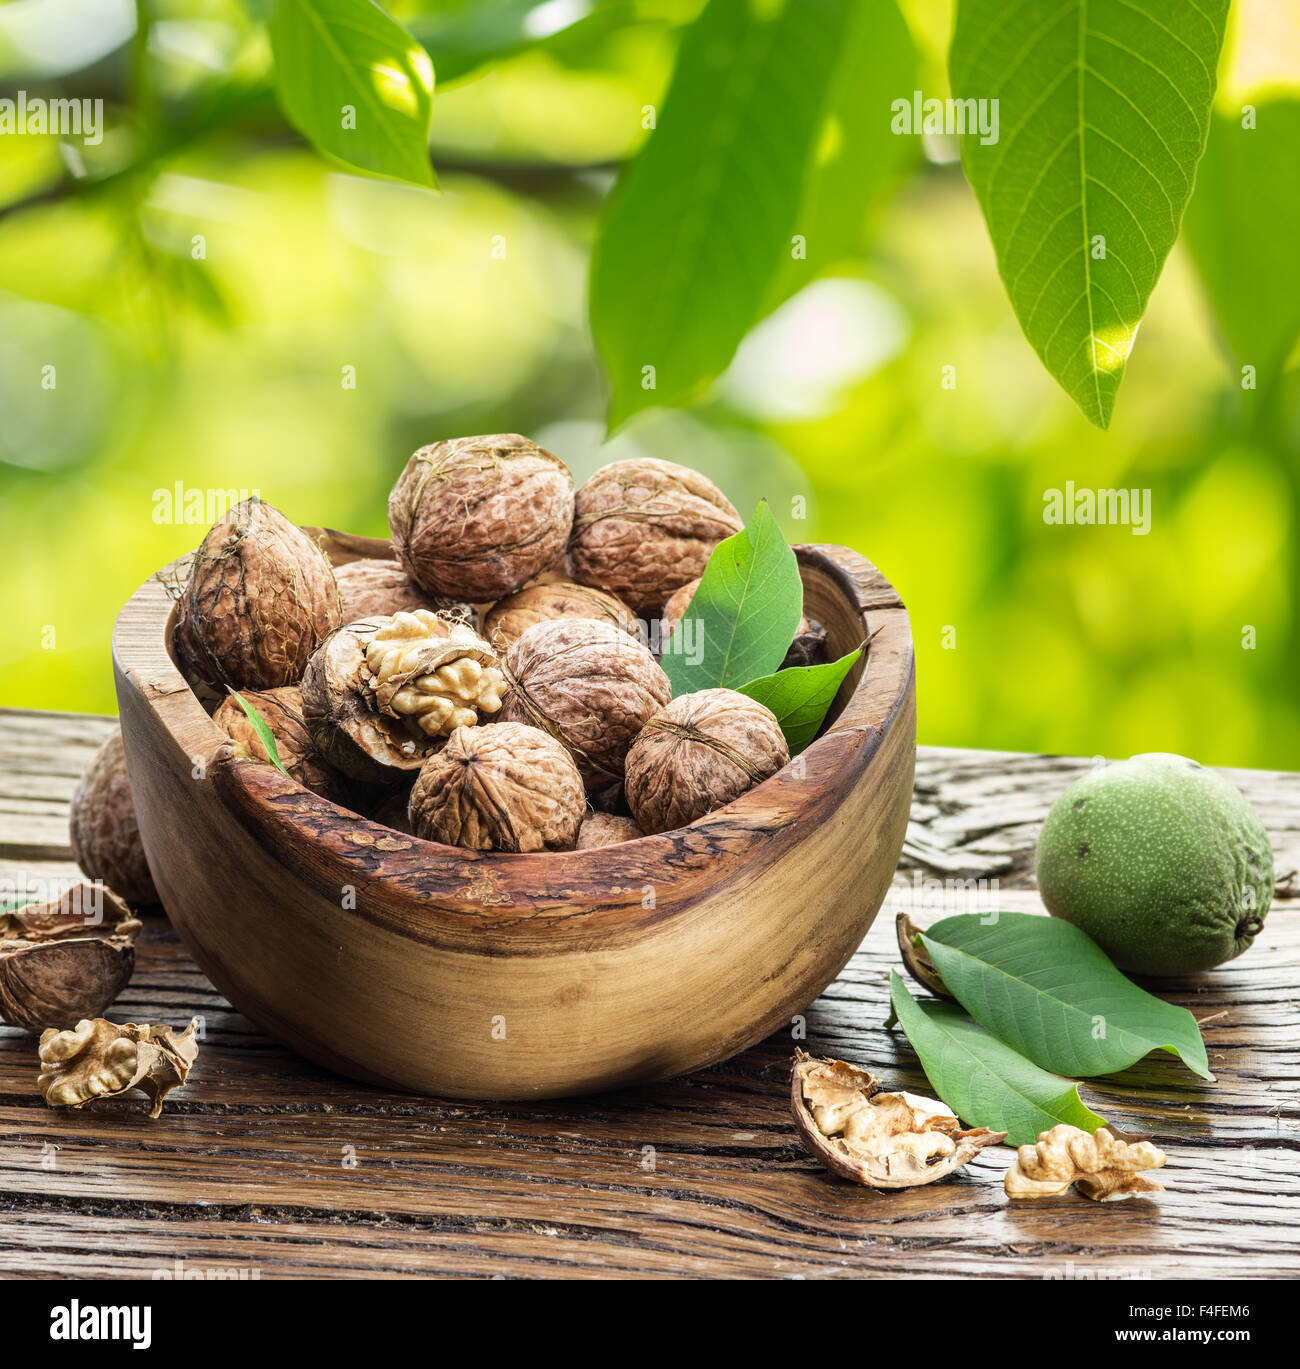 Walnuts in the wooden bowl on the table under the walnut tree. Stock Photo